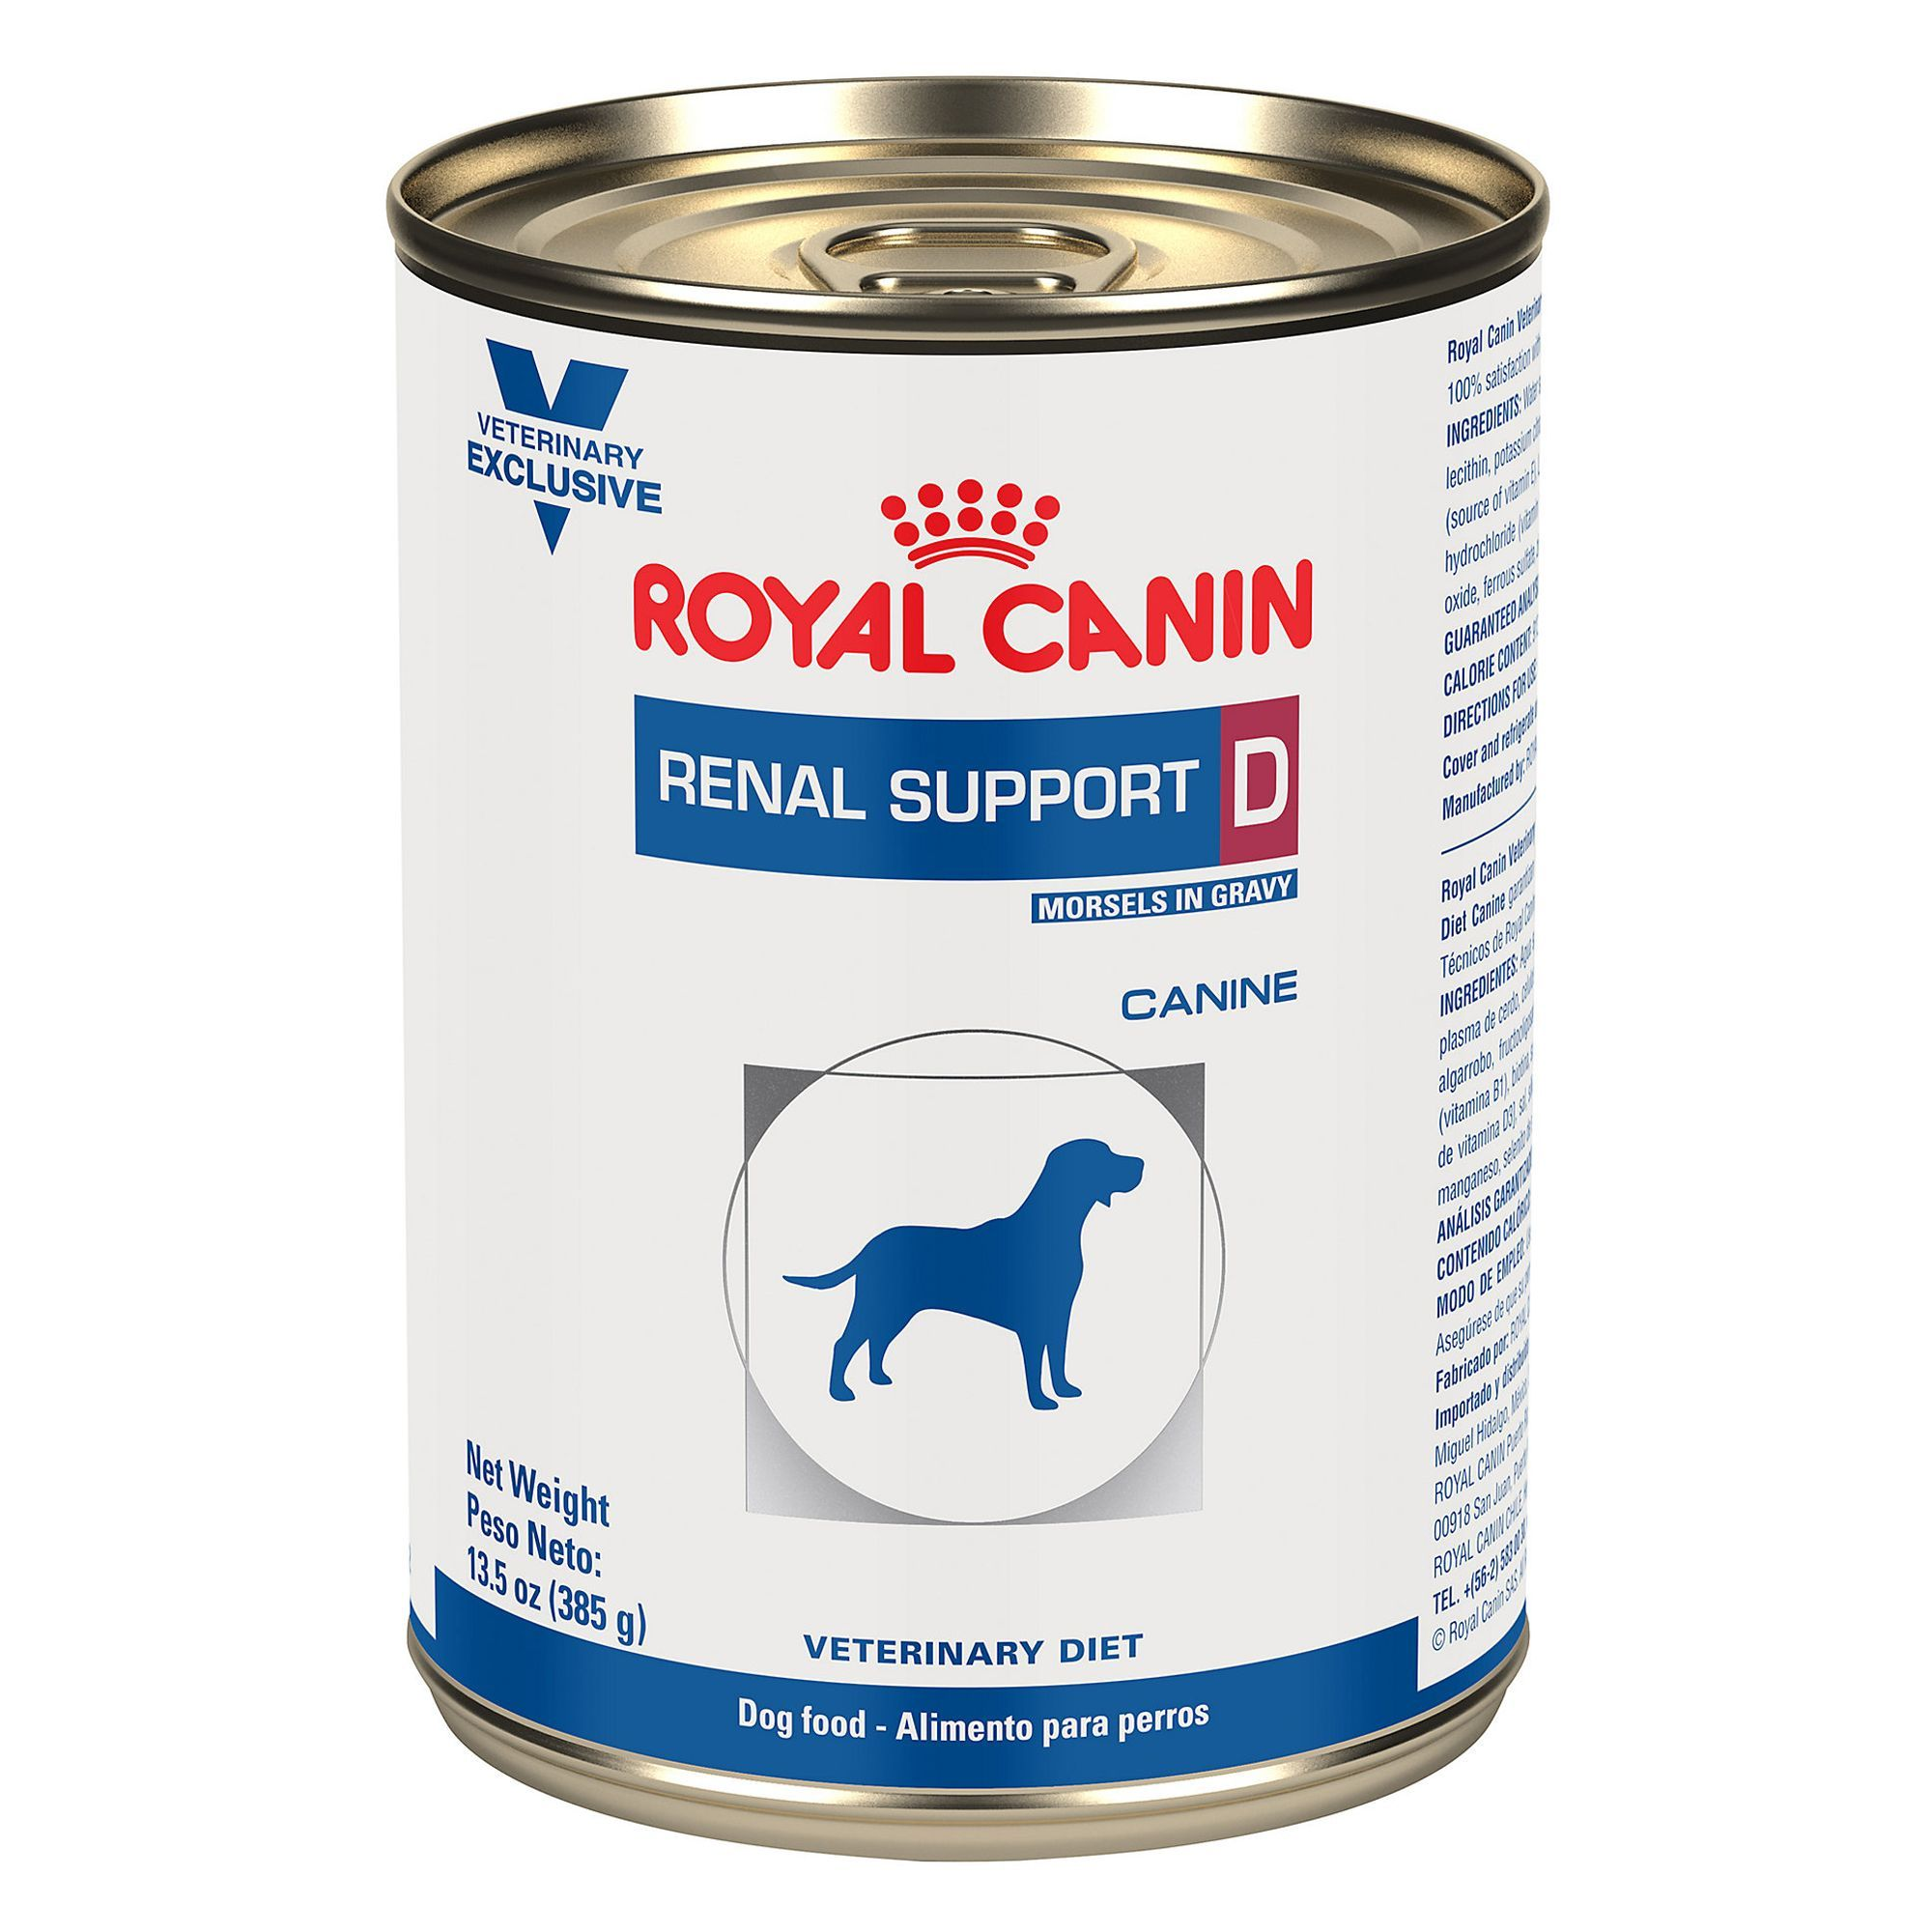 Royal Canin Canine Veterinary Diet Renal Support D Dog Food Size